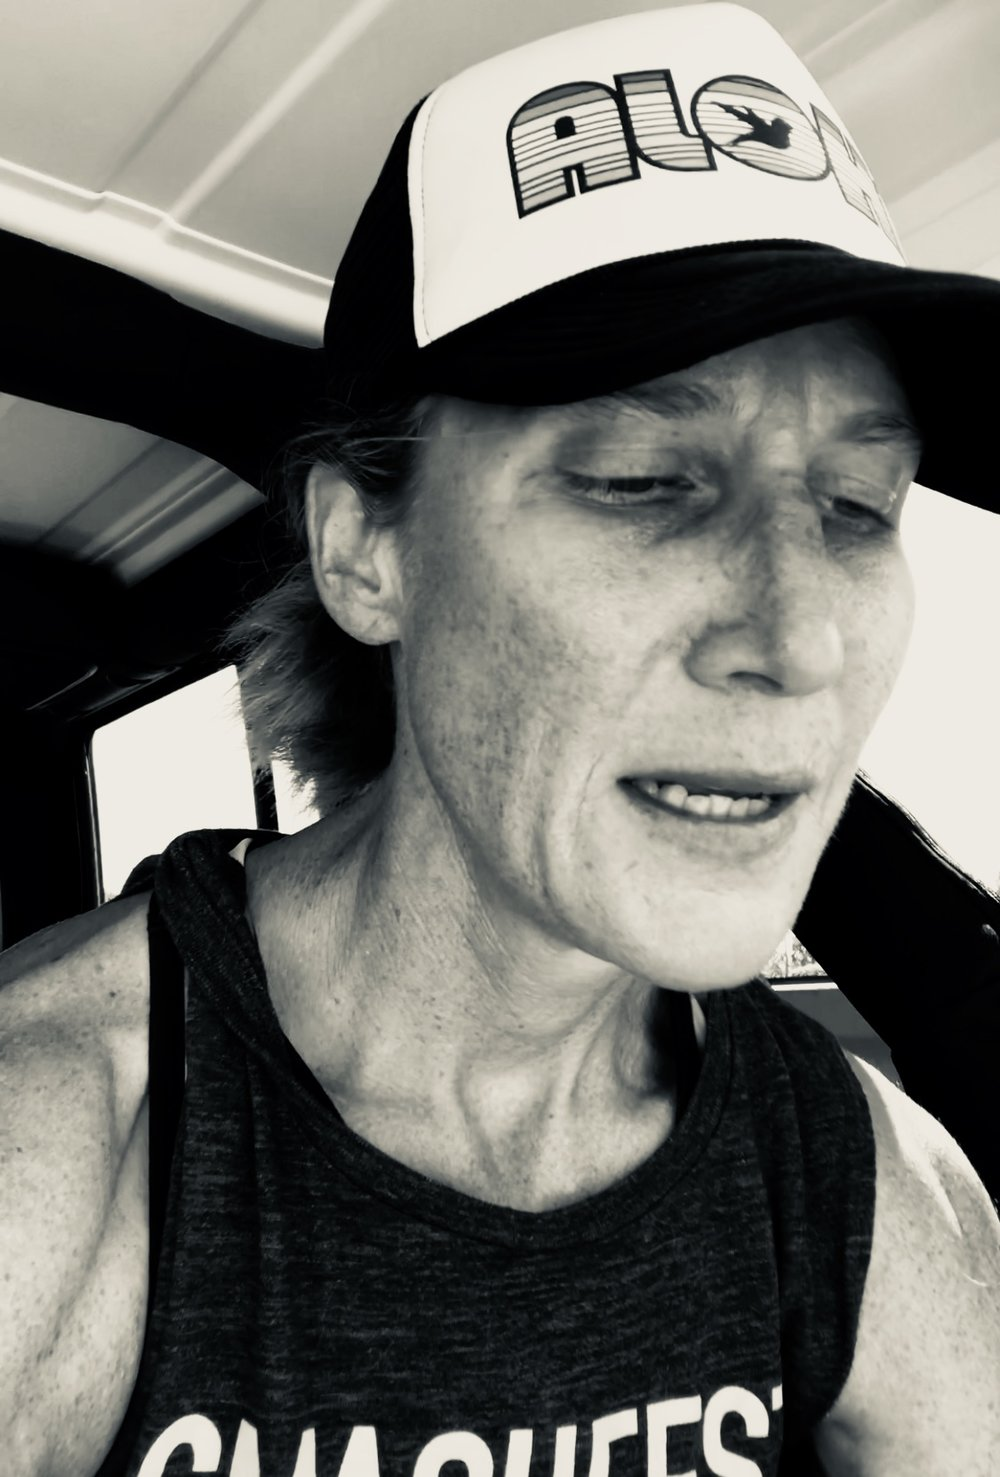 Sitting in the back of my Jeep, letting it sink in that I just completed the hardest workout of my life.